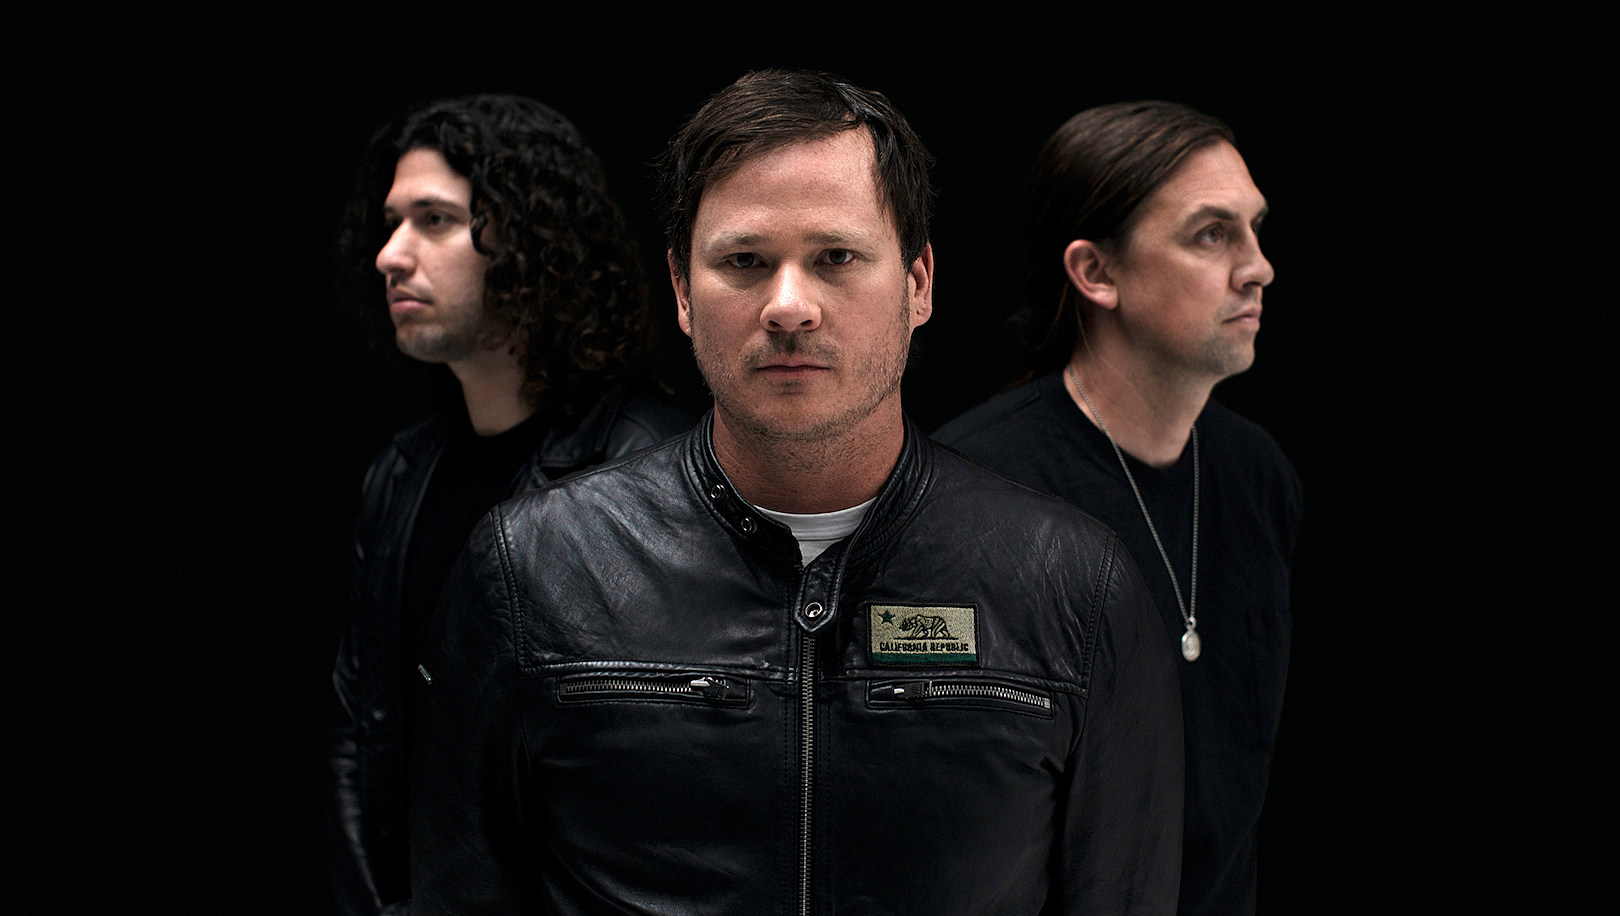 Angels & Airwaves Blink-182 Tom DeLonge